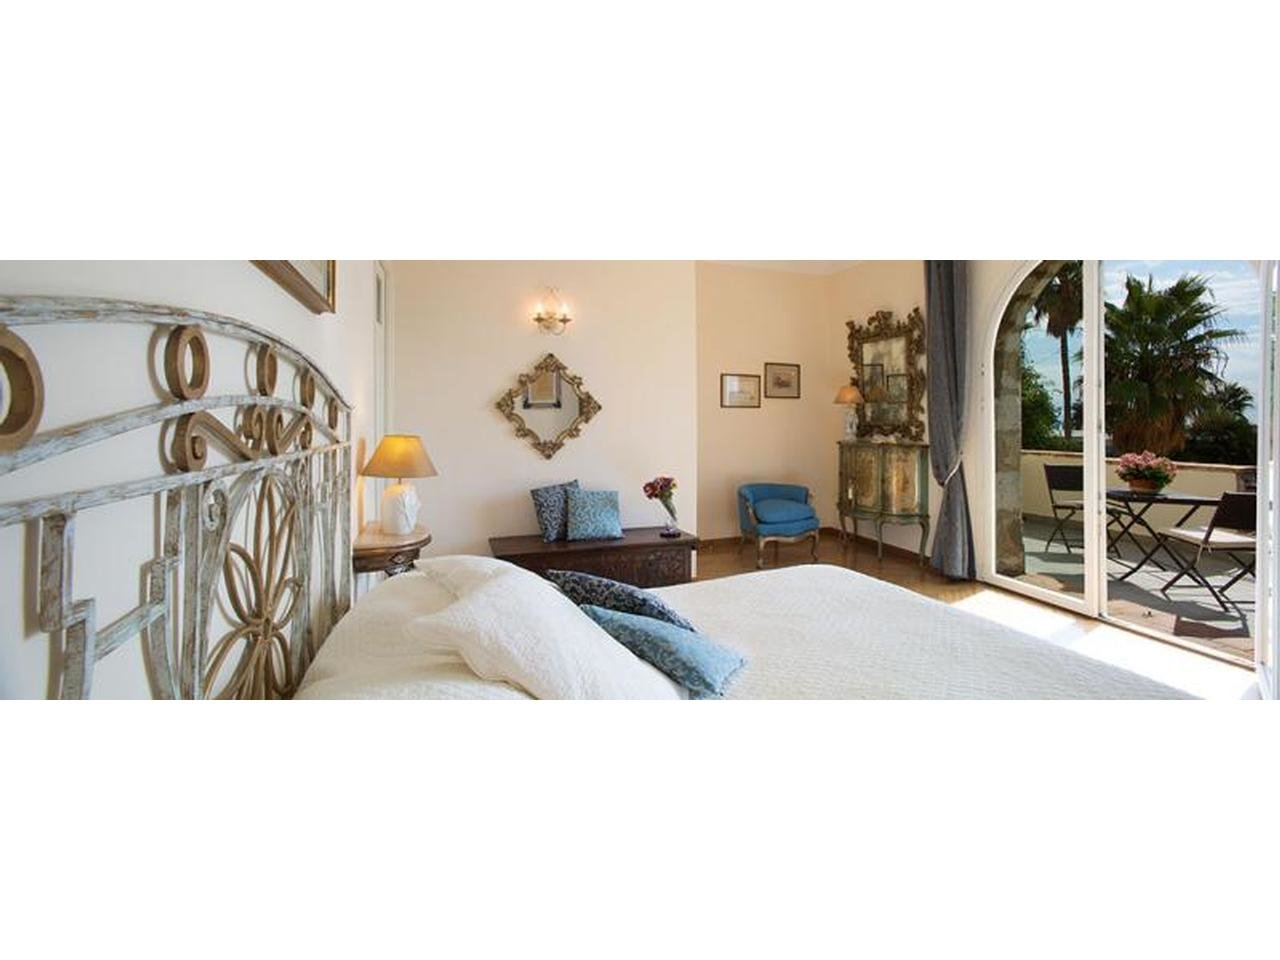 Appartement  10 Rooms 400m2  for sale  2350000 €